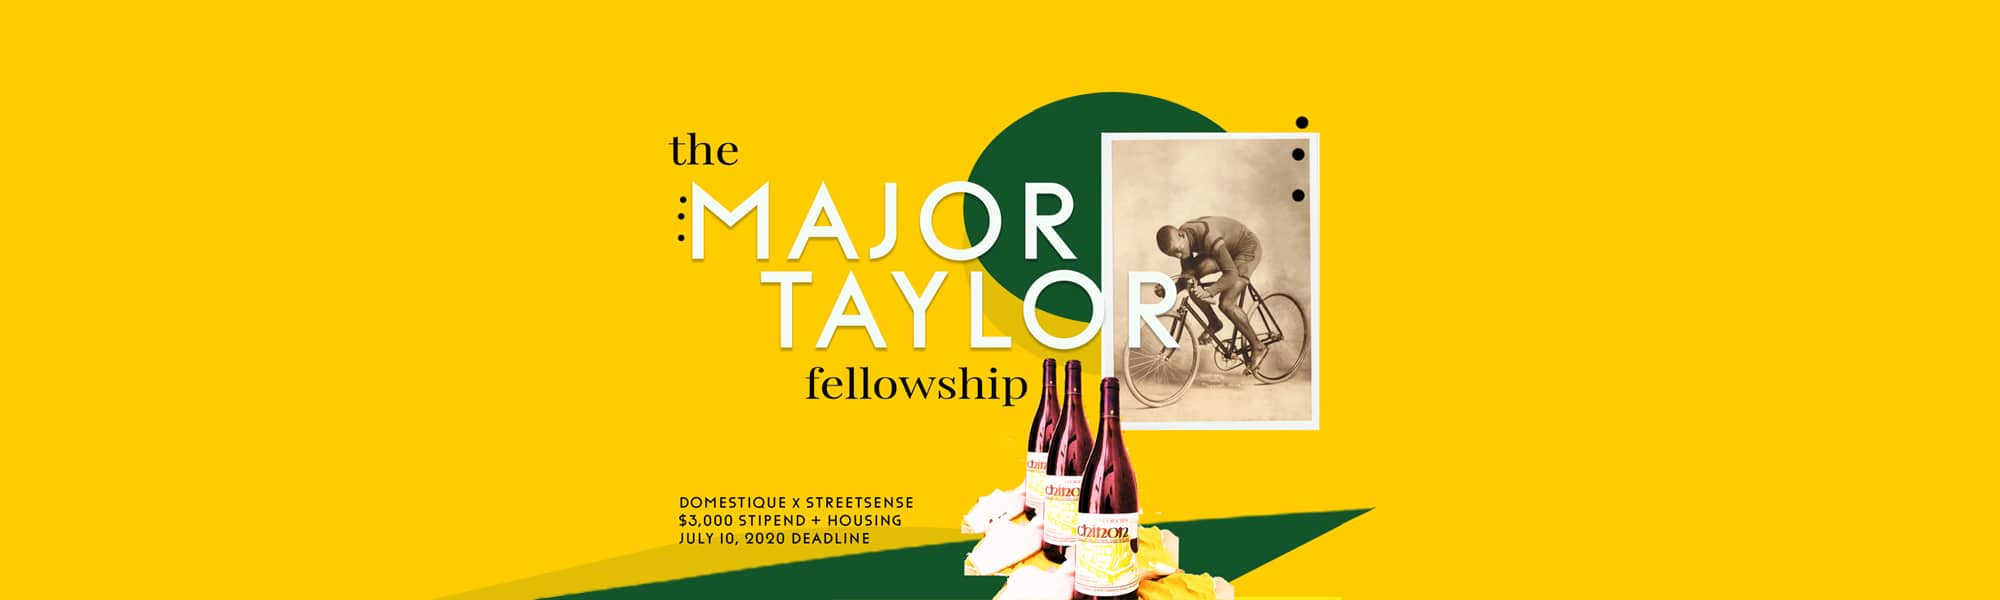 Get Your Start in Wine with the Major Taylor Fellowship